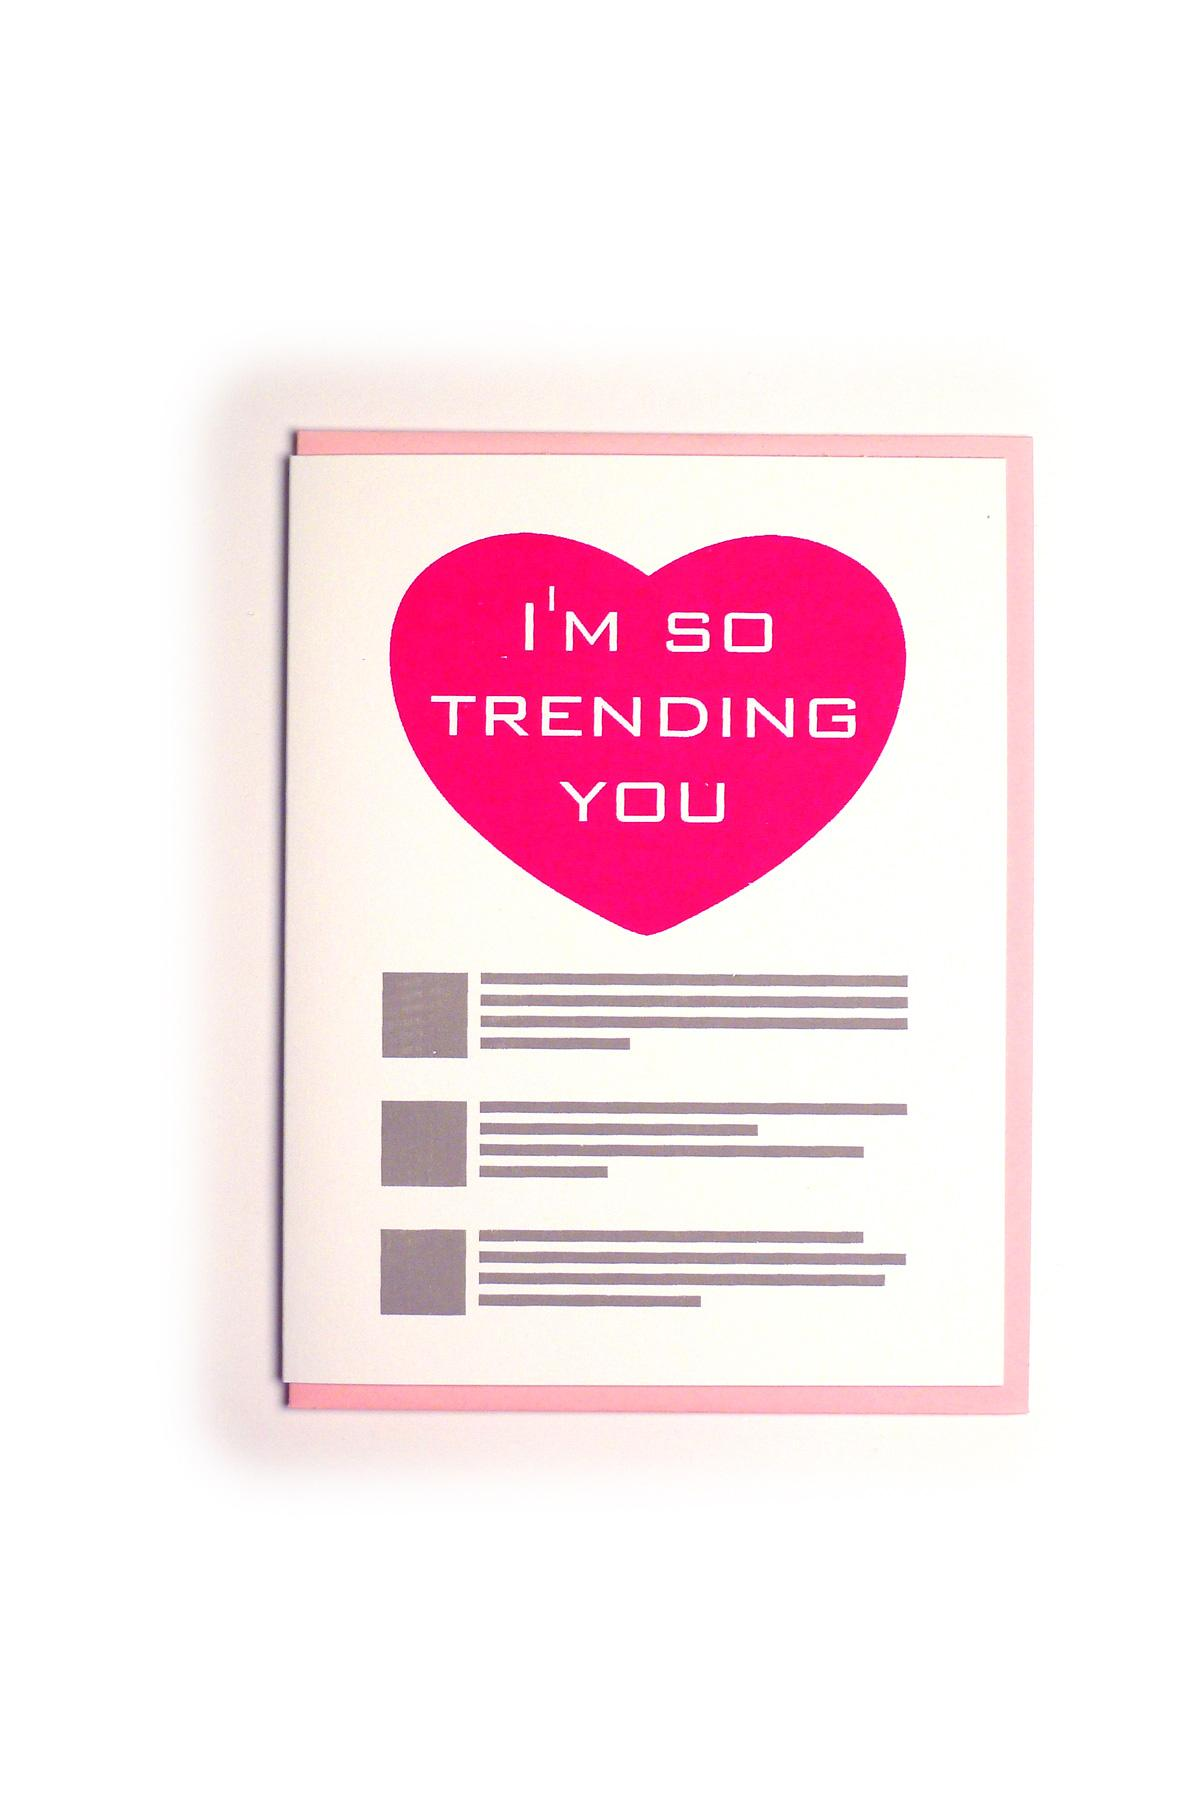 Kid Icarus - LOVE -  'I'm So Trending You' Greeting Card